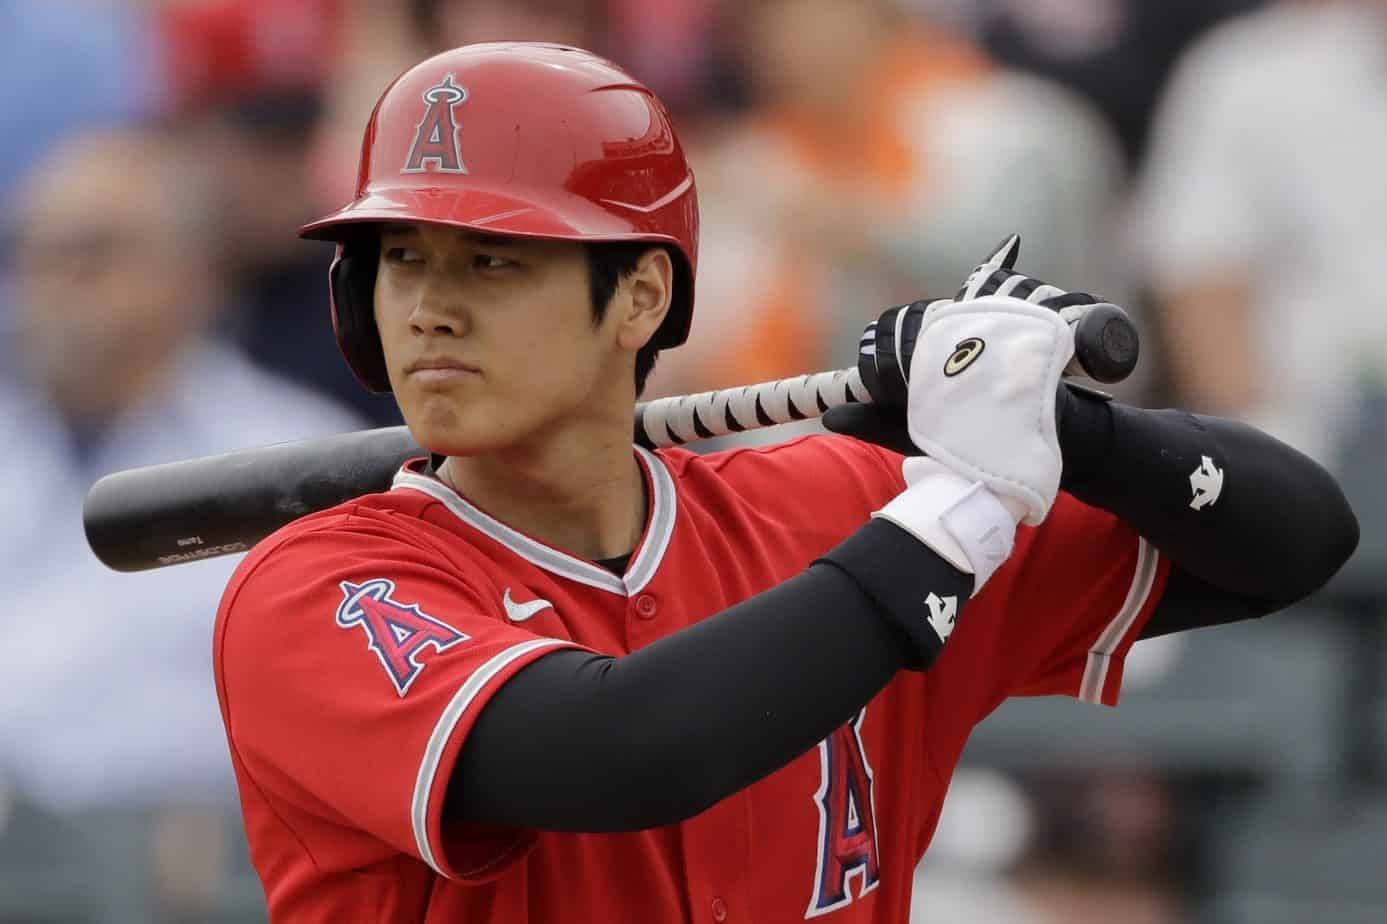 MLB DFS Picks on Deeper Dive & Live Before Lock. DraftKings and FanDuel daily fantasy baseball advice for Tuesday 8/31 w/ Shohei Ohtani.